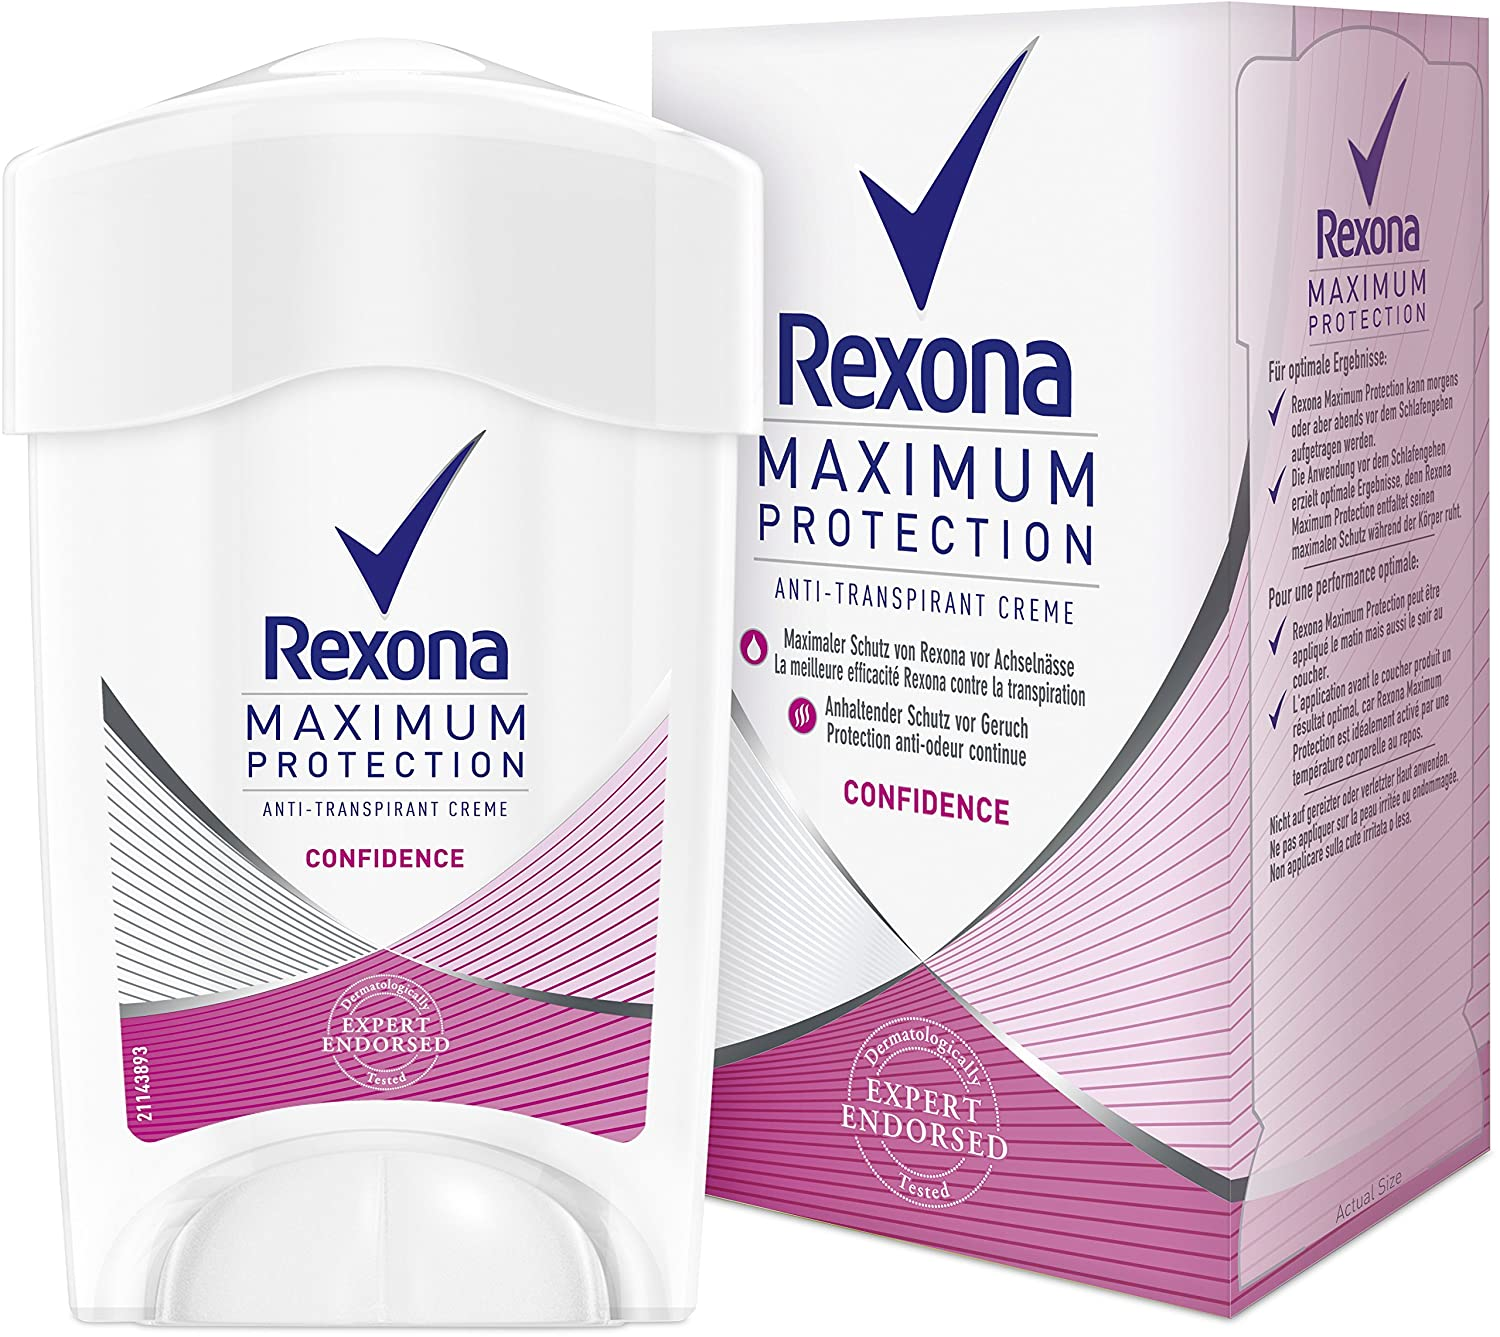 Rexona Confidence Maximum Protection Stick Deodorant